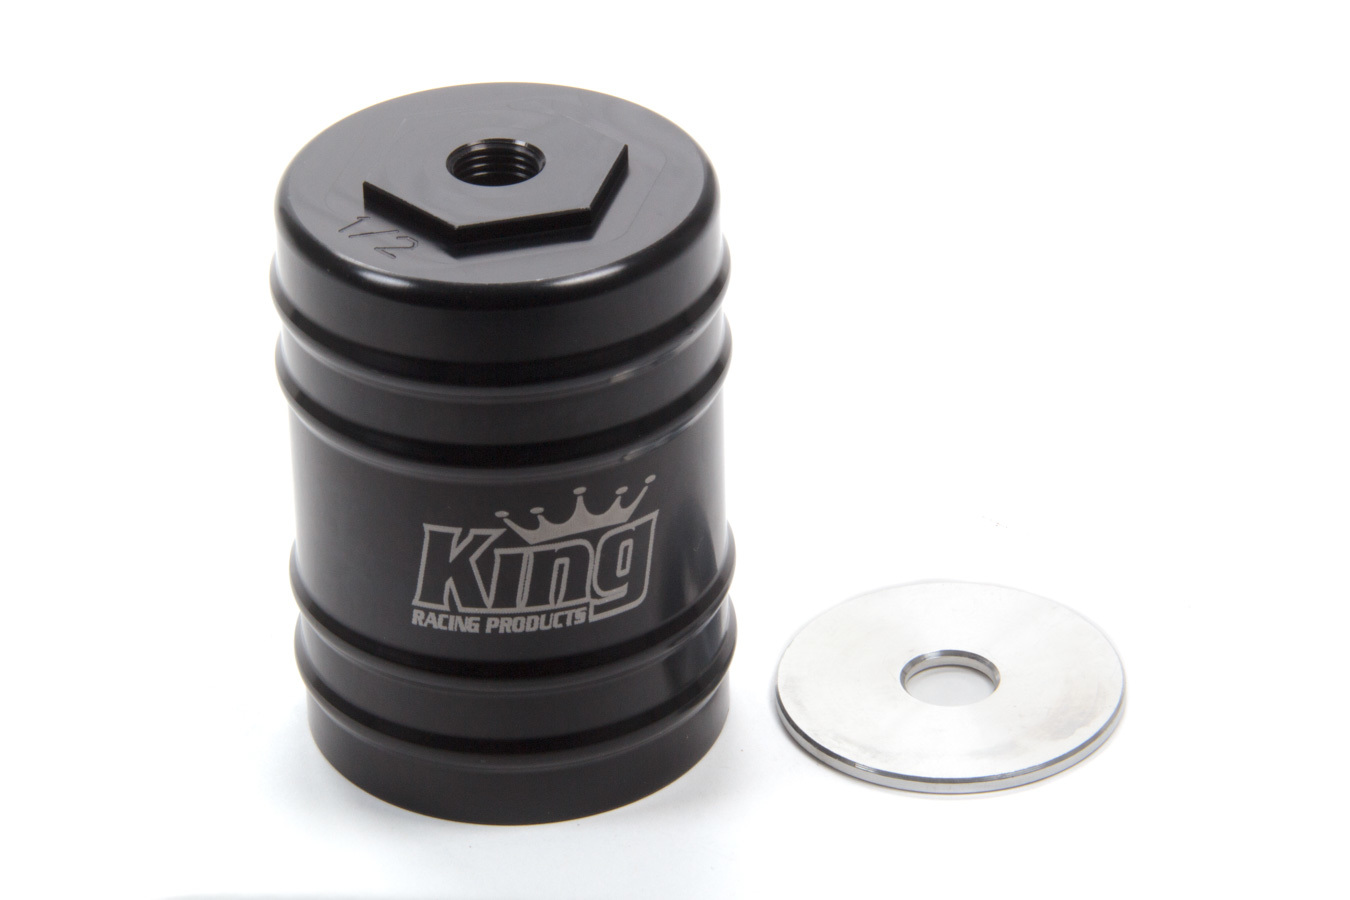 King Racing Products 2370 Bump Stop Cup, Adjustable, 1/2-20 Thread Shaft, Aluminum, Black Anodized, Small Body Shocks, Each